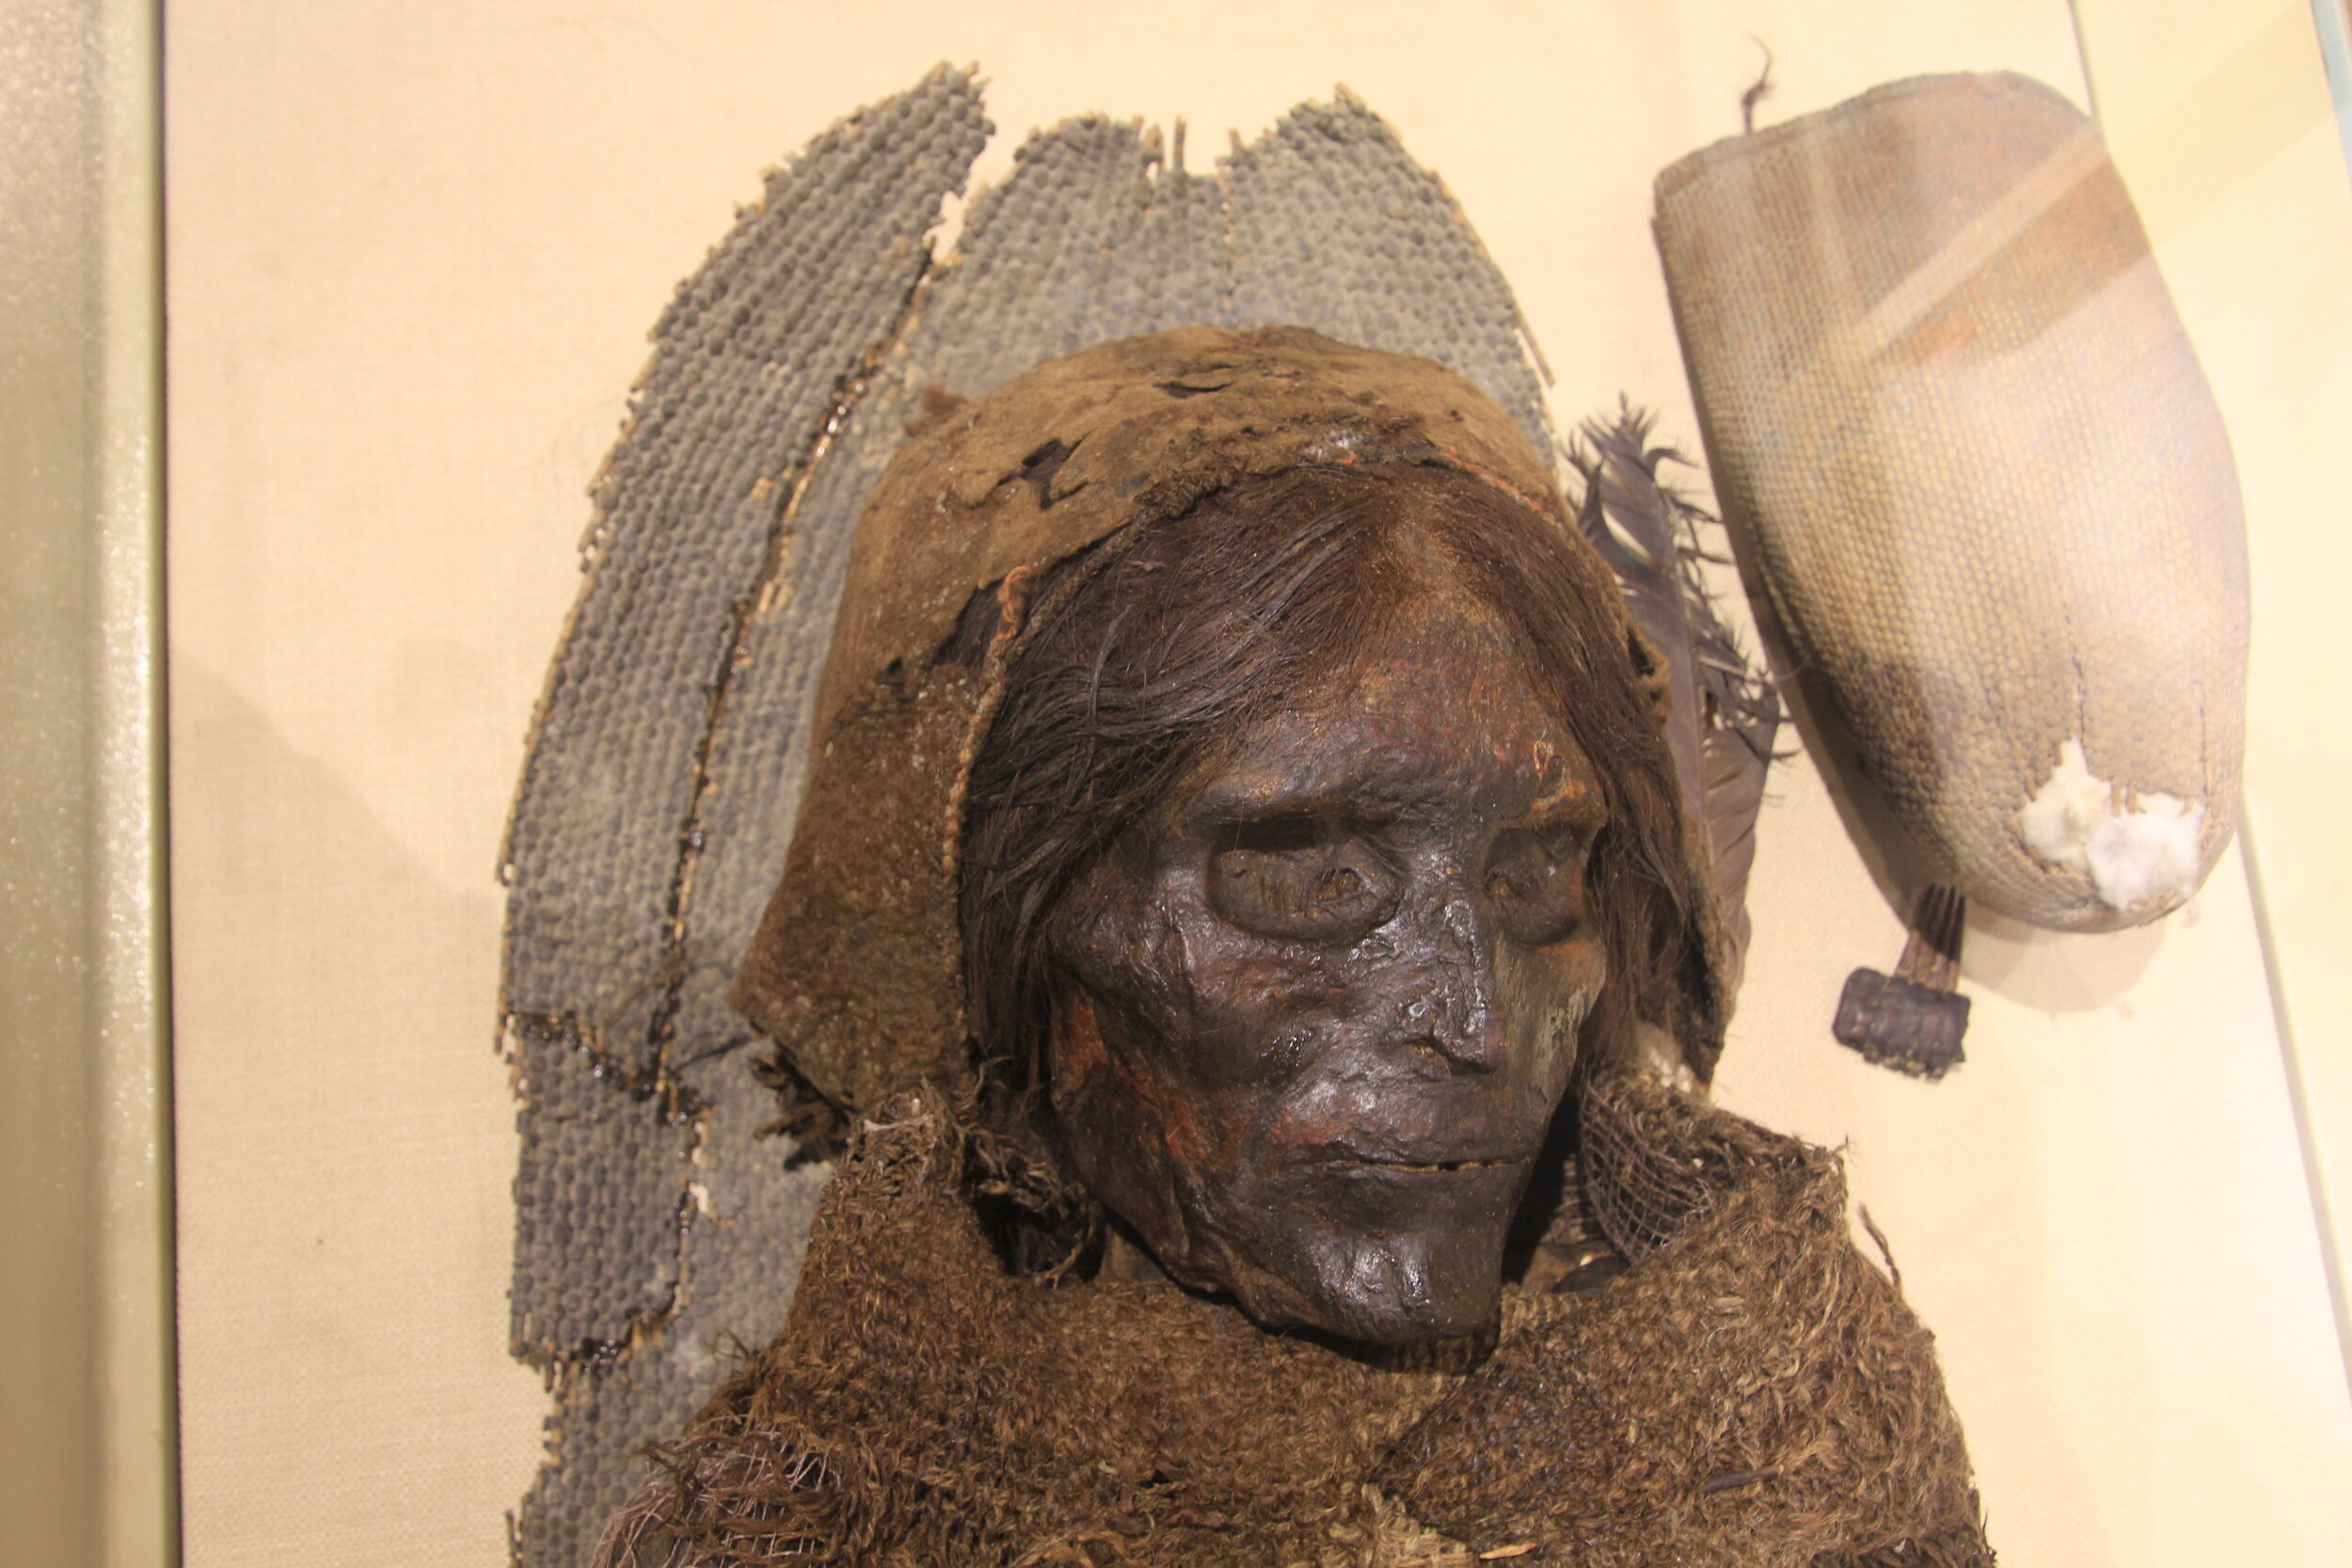 Tarim Basin mummies